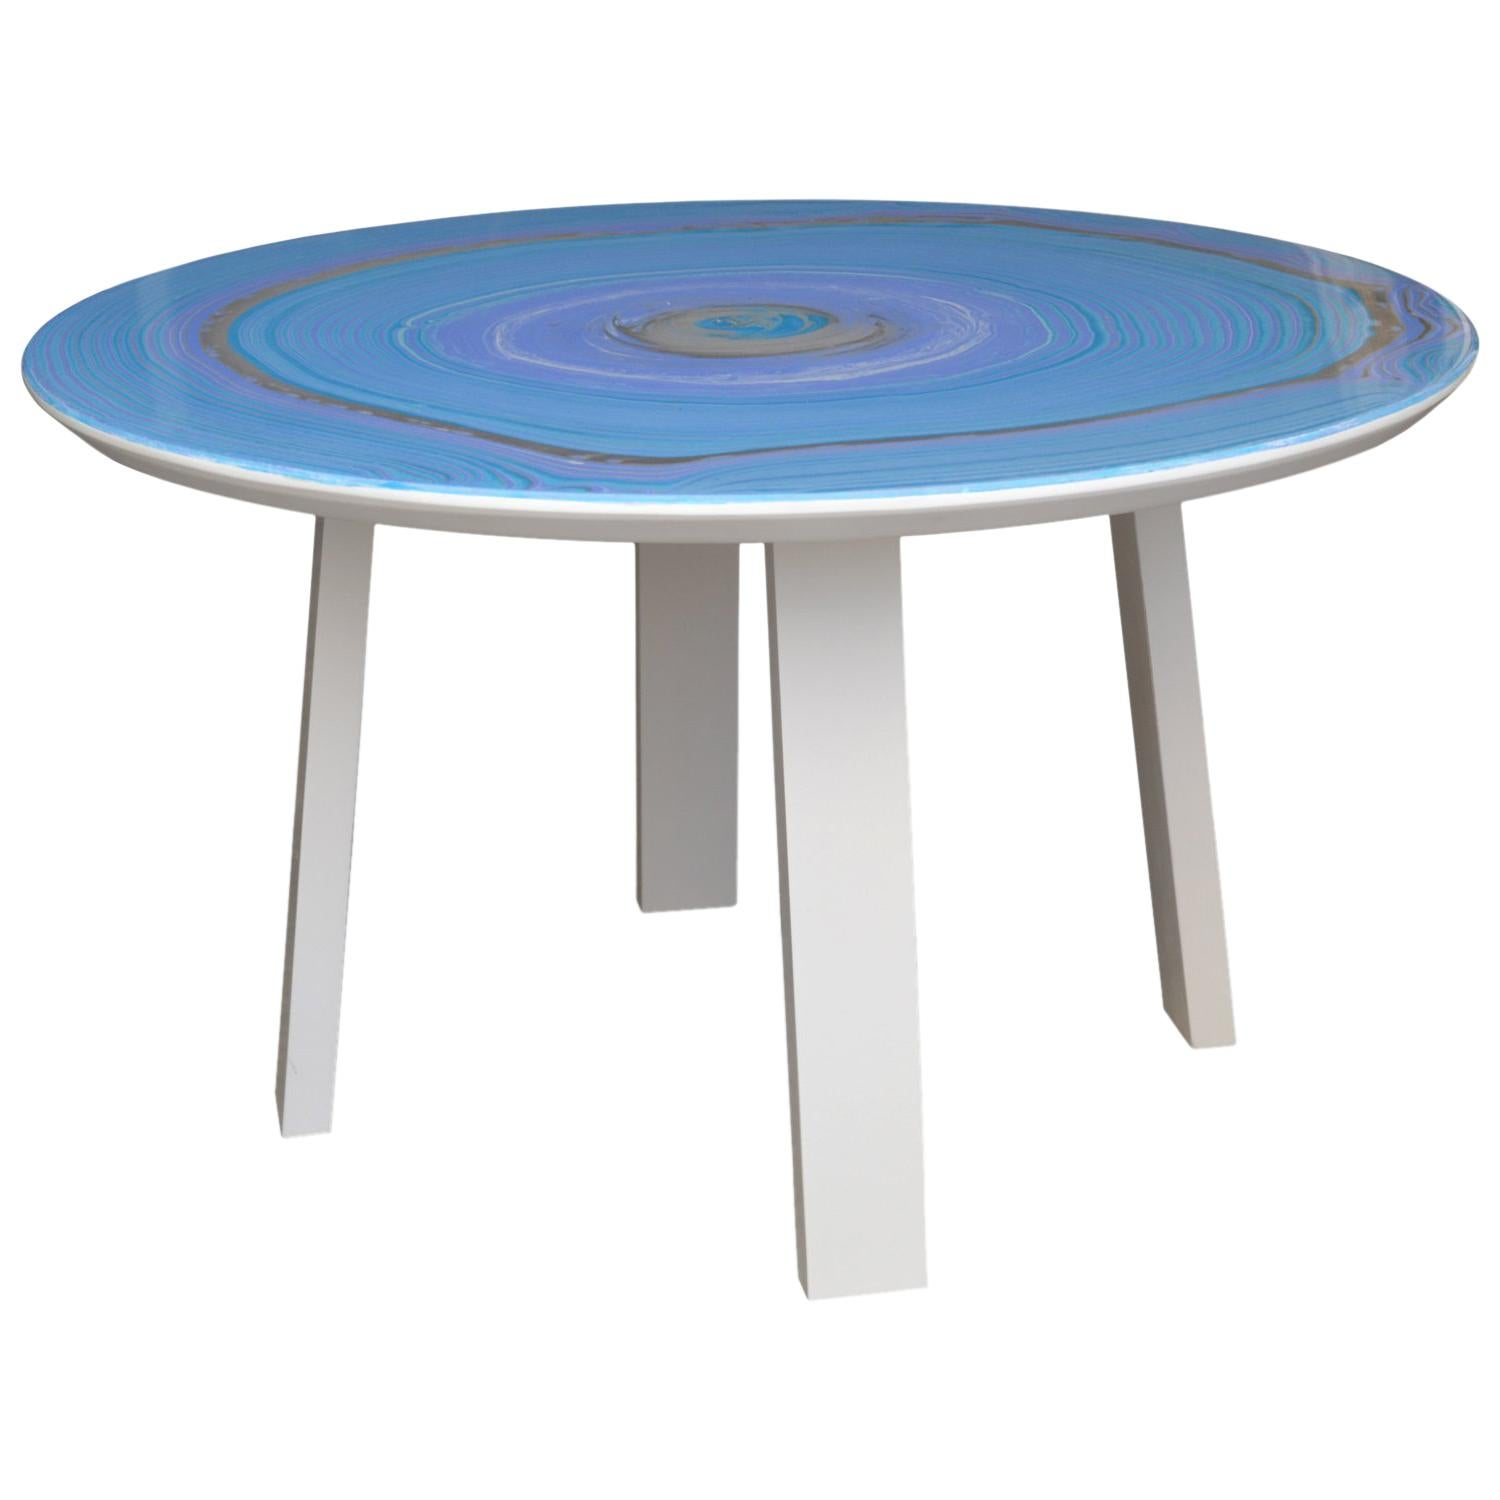 Groovy White Coffee Table Wooden Top Table Design Ideas Evergreenethics Interior Chair Design Evergreenethicsorg